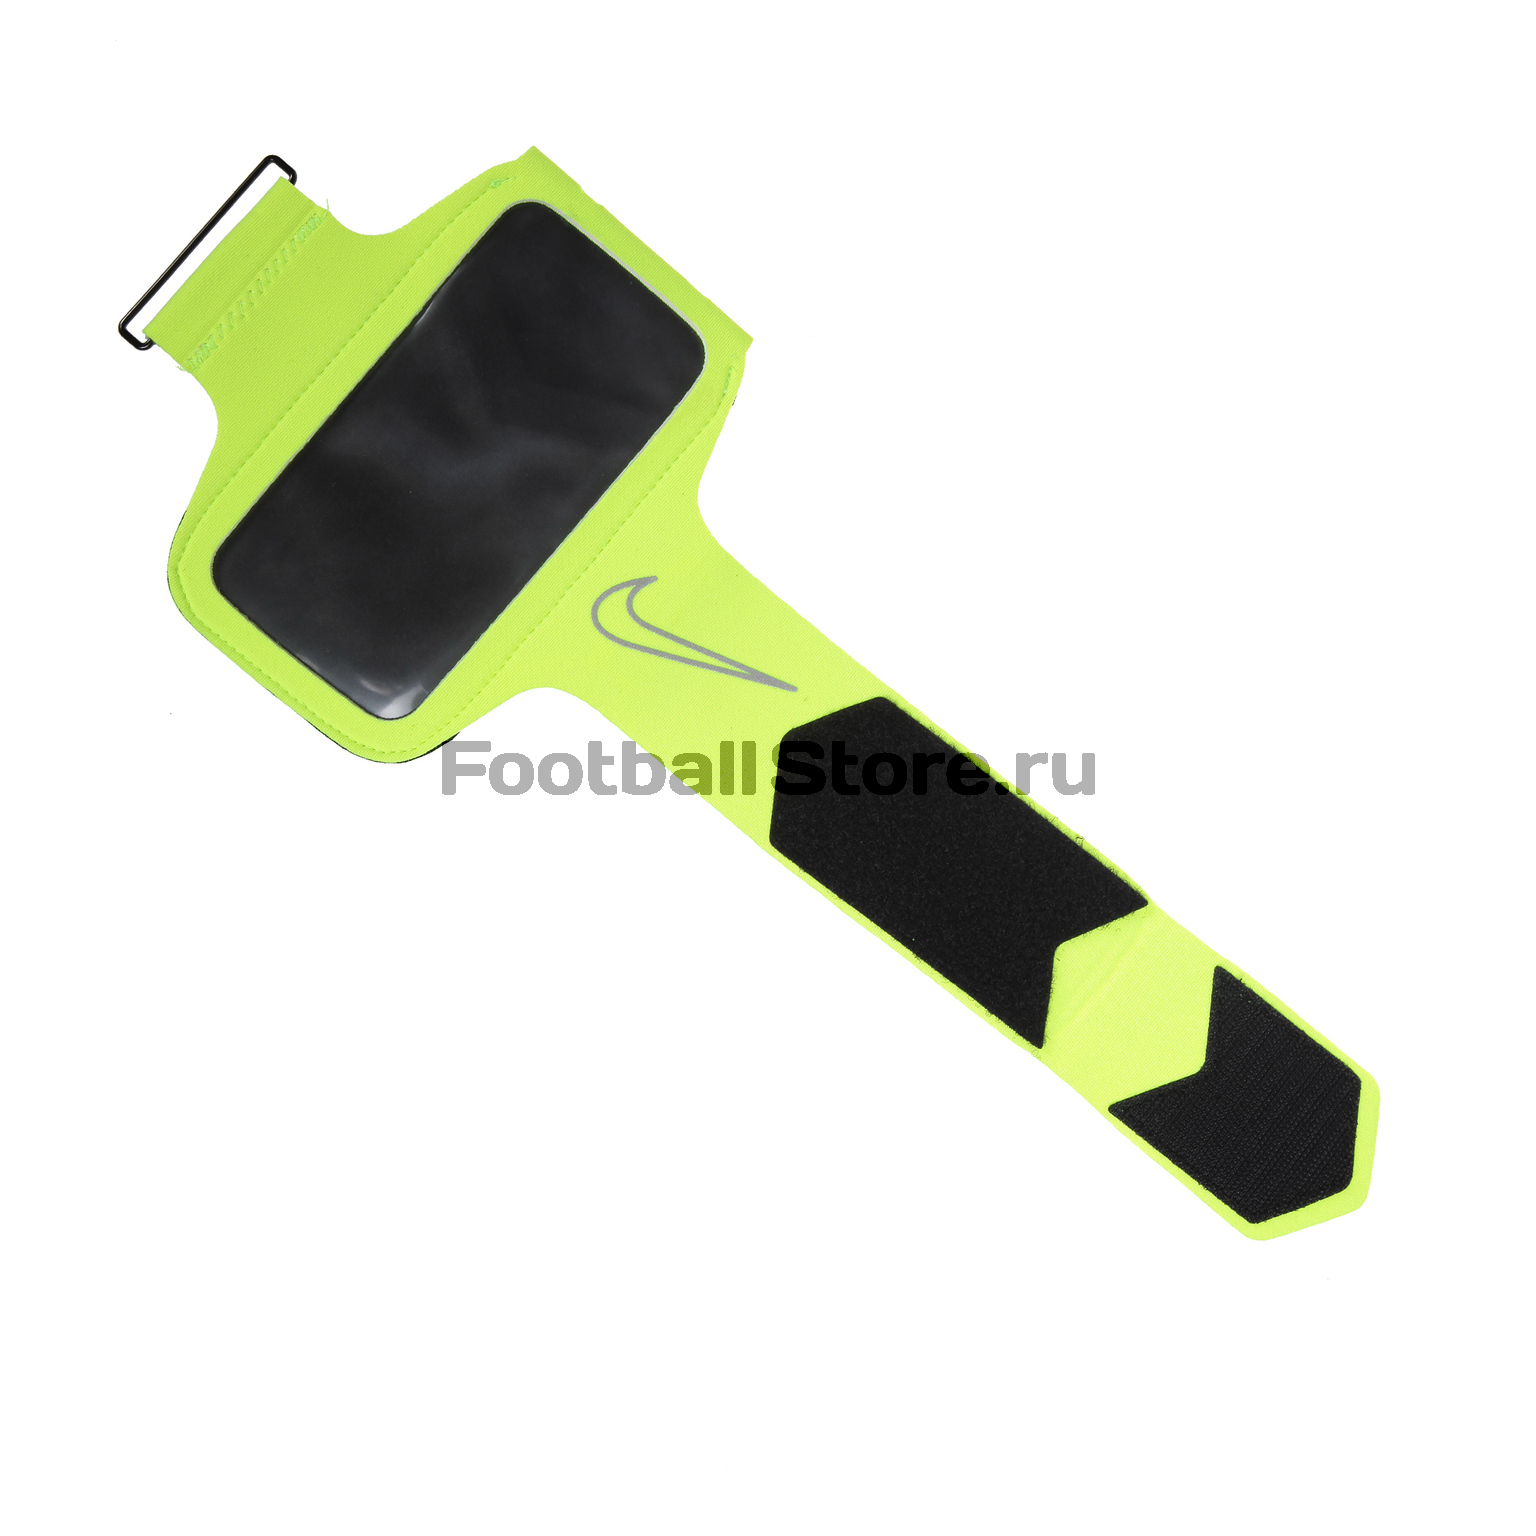 Спортинвентарь Nike Чехол для Iphone 5/5S на руку Nike Lightweight Arm Band 2.0 N.RN.43.715.OS чехол для телефона на руку nike printed lean arm band цвет синий черный